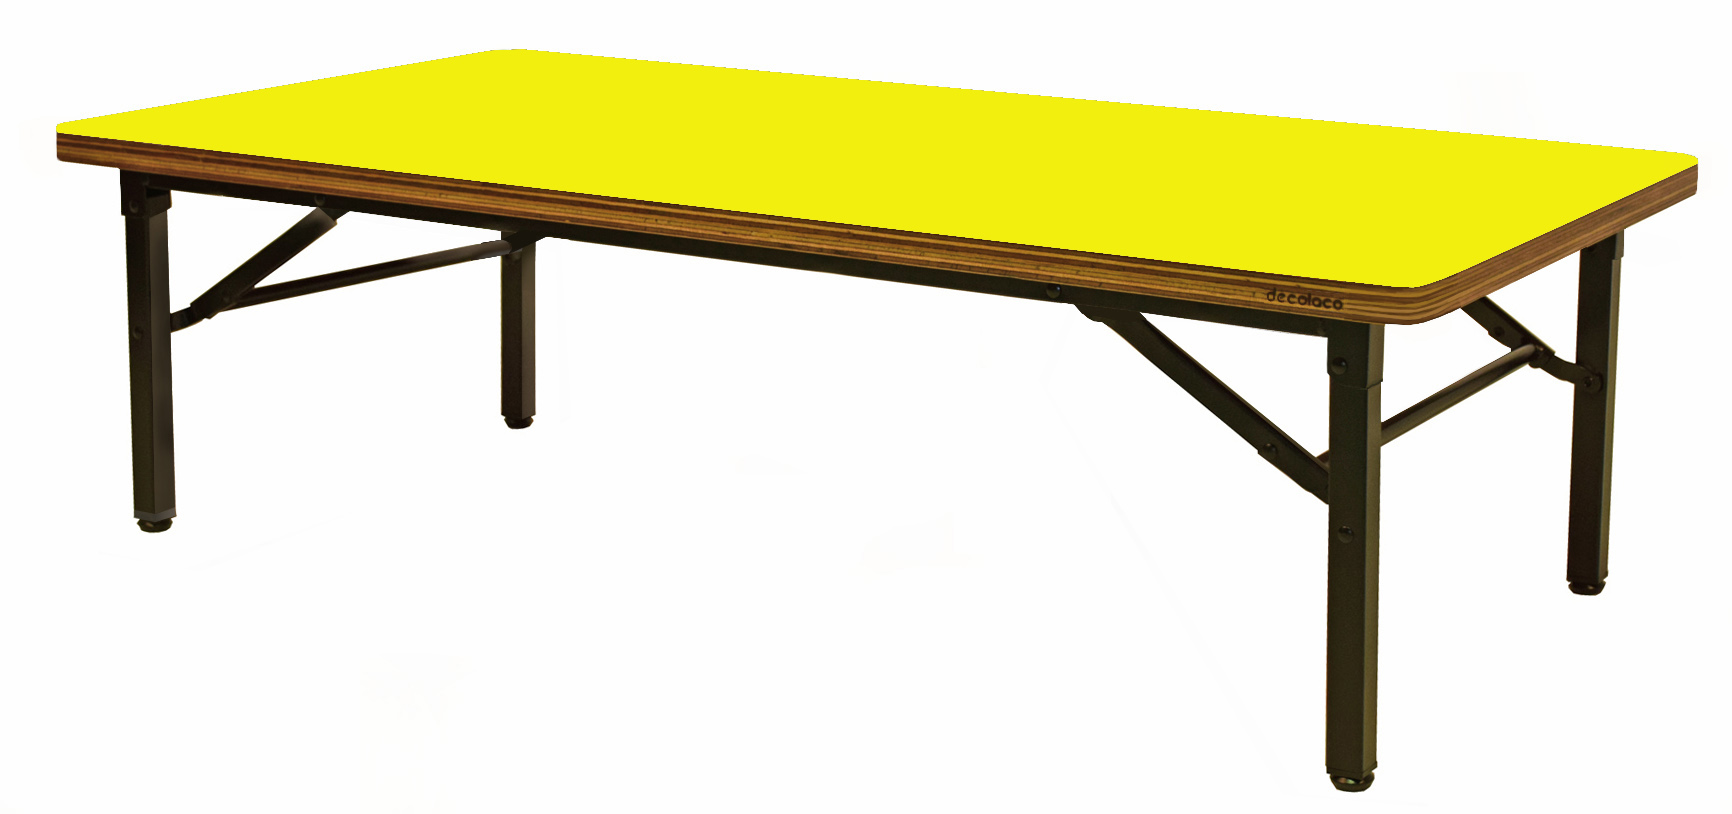 table03-006